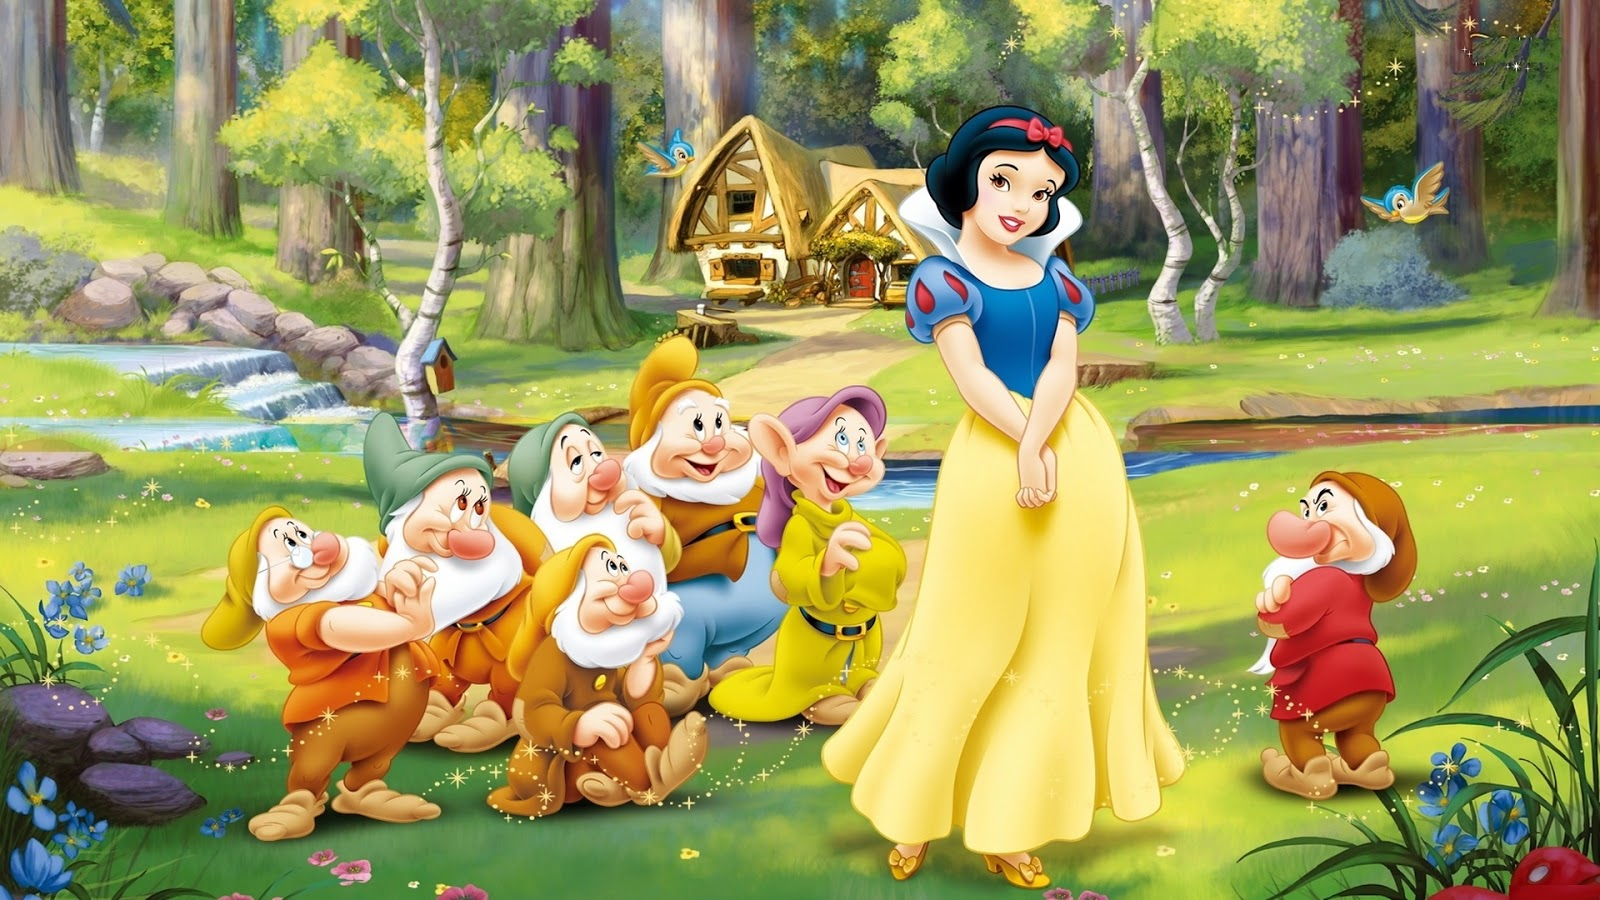 Snow-white-cartoon-high-resolution-wallpaper-image-download-free